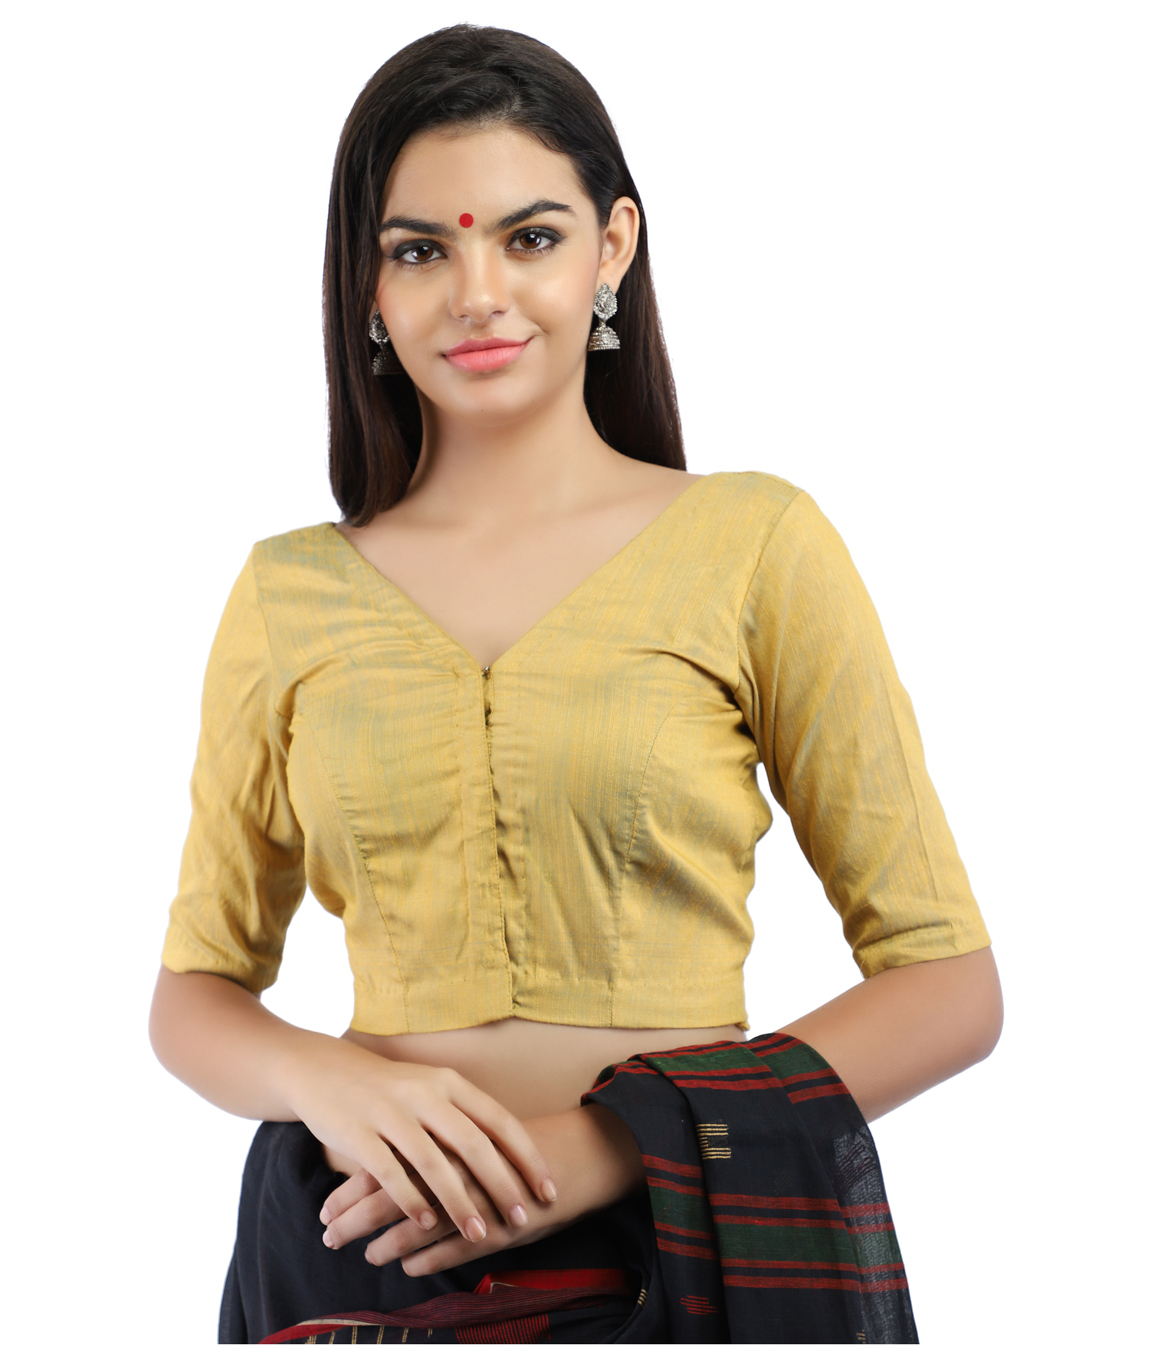 Silk Slub Yellow and Blue Dual Tone Non-Padded Blouse in V-Neck With Front Hook Closure (COLOUR : YELLOW)